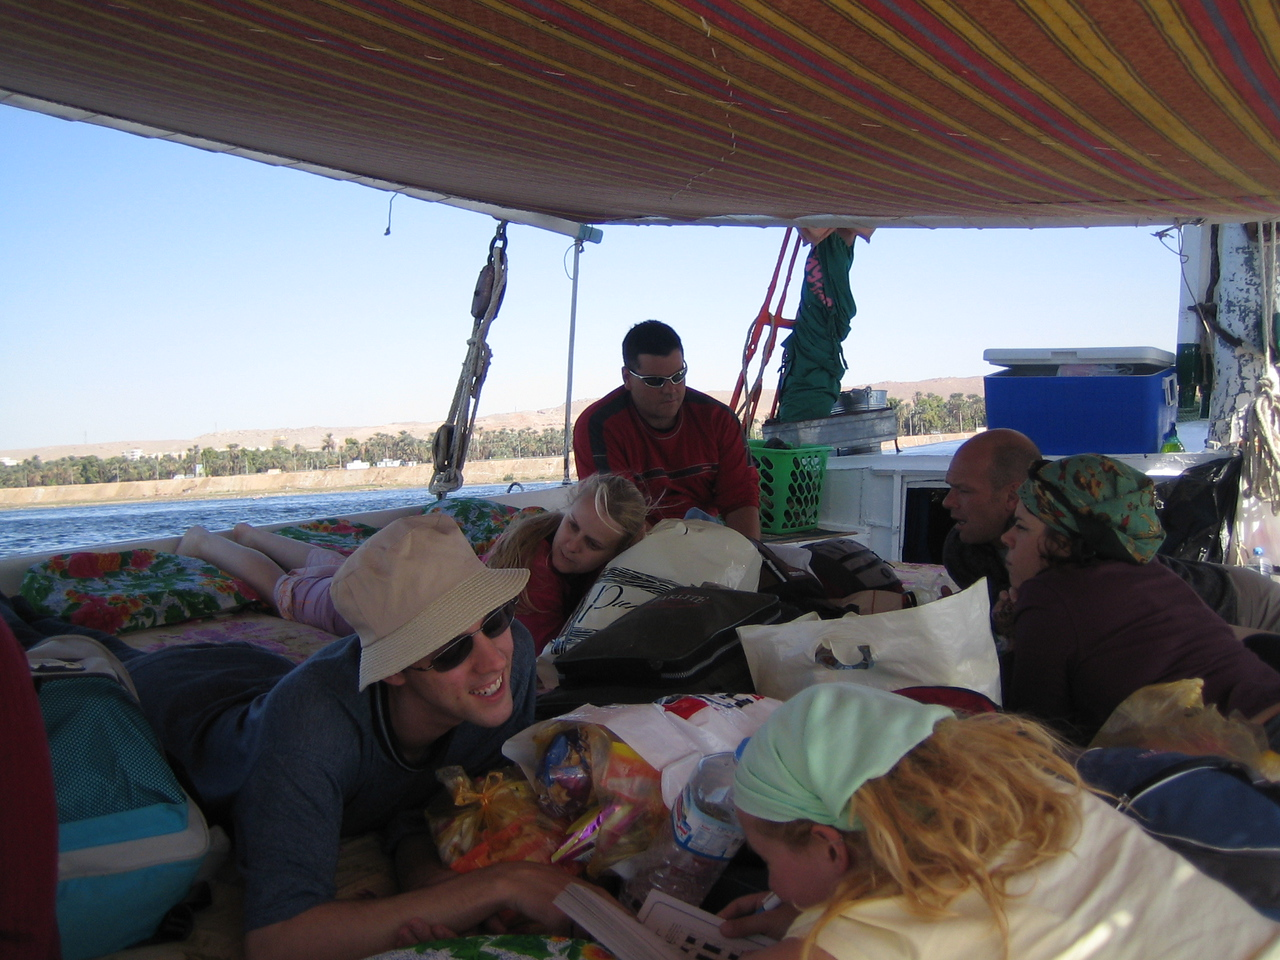 b1) First felucca night was pretty cold. They set up a canopy with sides to block the wind but it was still pretty cold. Someone comes up with the idea to tell stories, your most embarassing story. Brett starts with such an eloquent story involving a recent bus trip in Thailand, long mileage, great heat, bathroom needs and a chain of events that is so funny, and conjures images never to be forgotten, that we are left speechless with side splitting laughter. After the story ends there is long silence. I rack my brain through my entire life history to find a story to compete with that one, but no one can, the game is over.